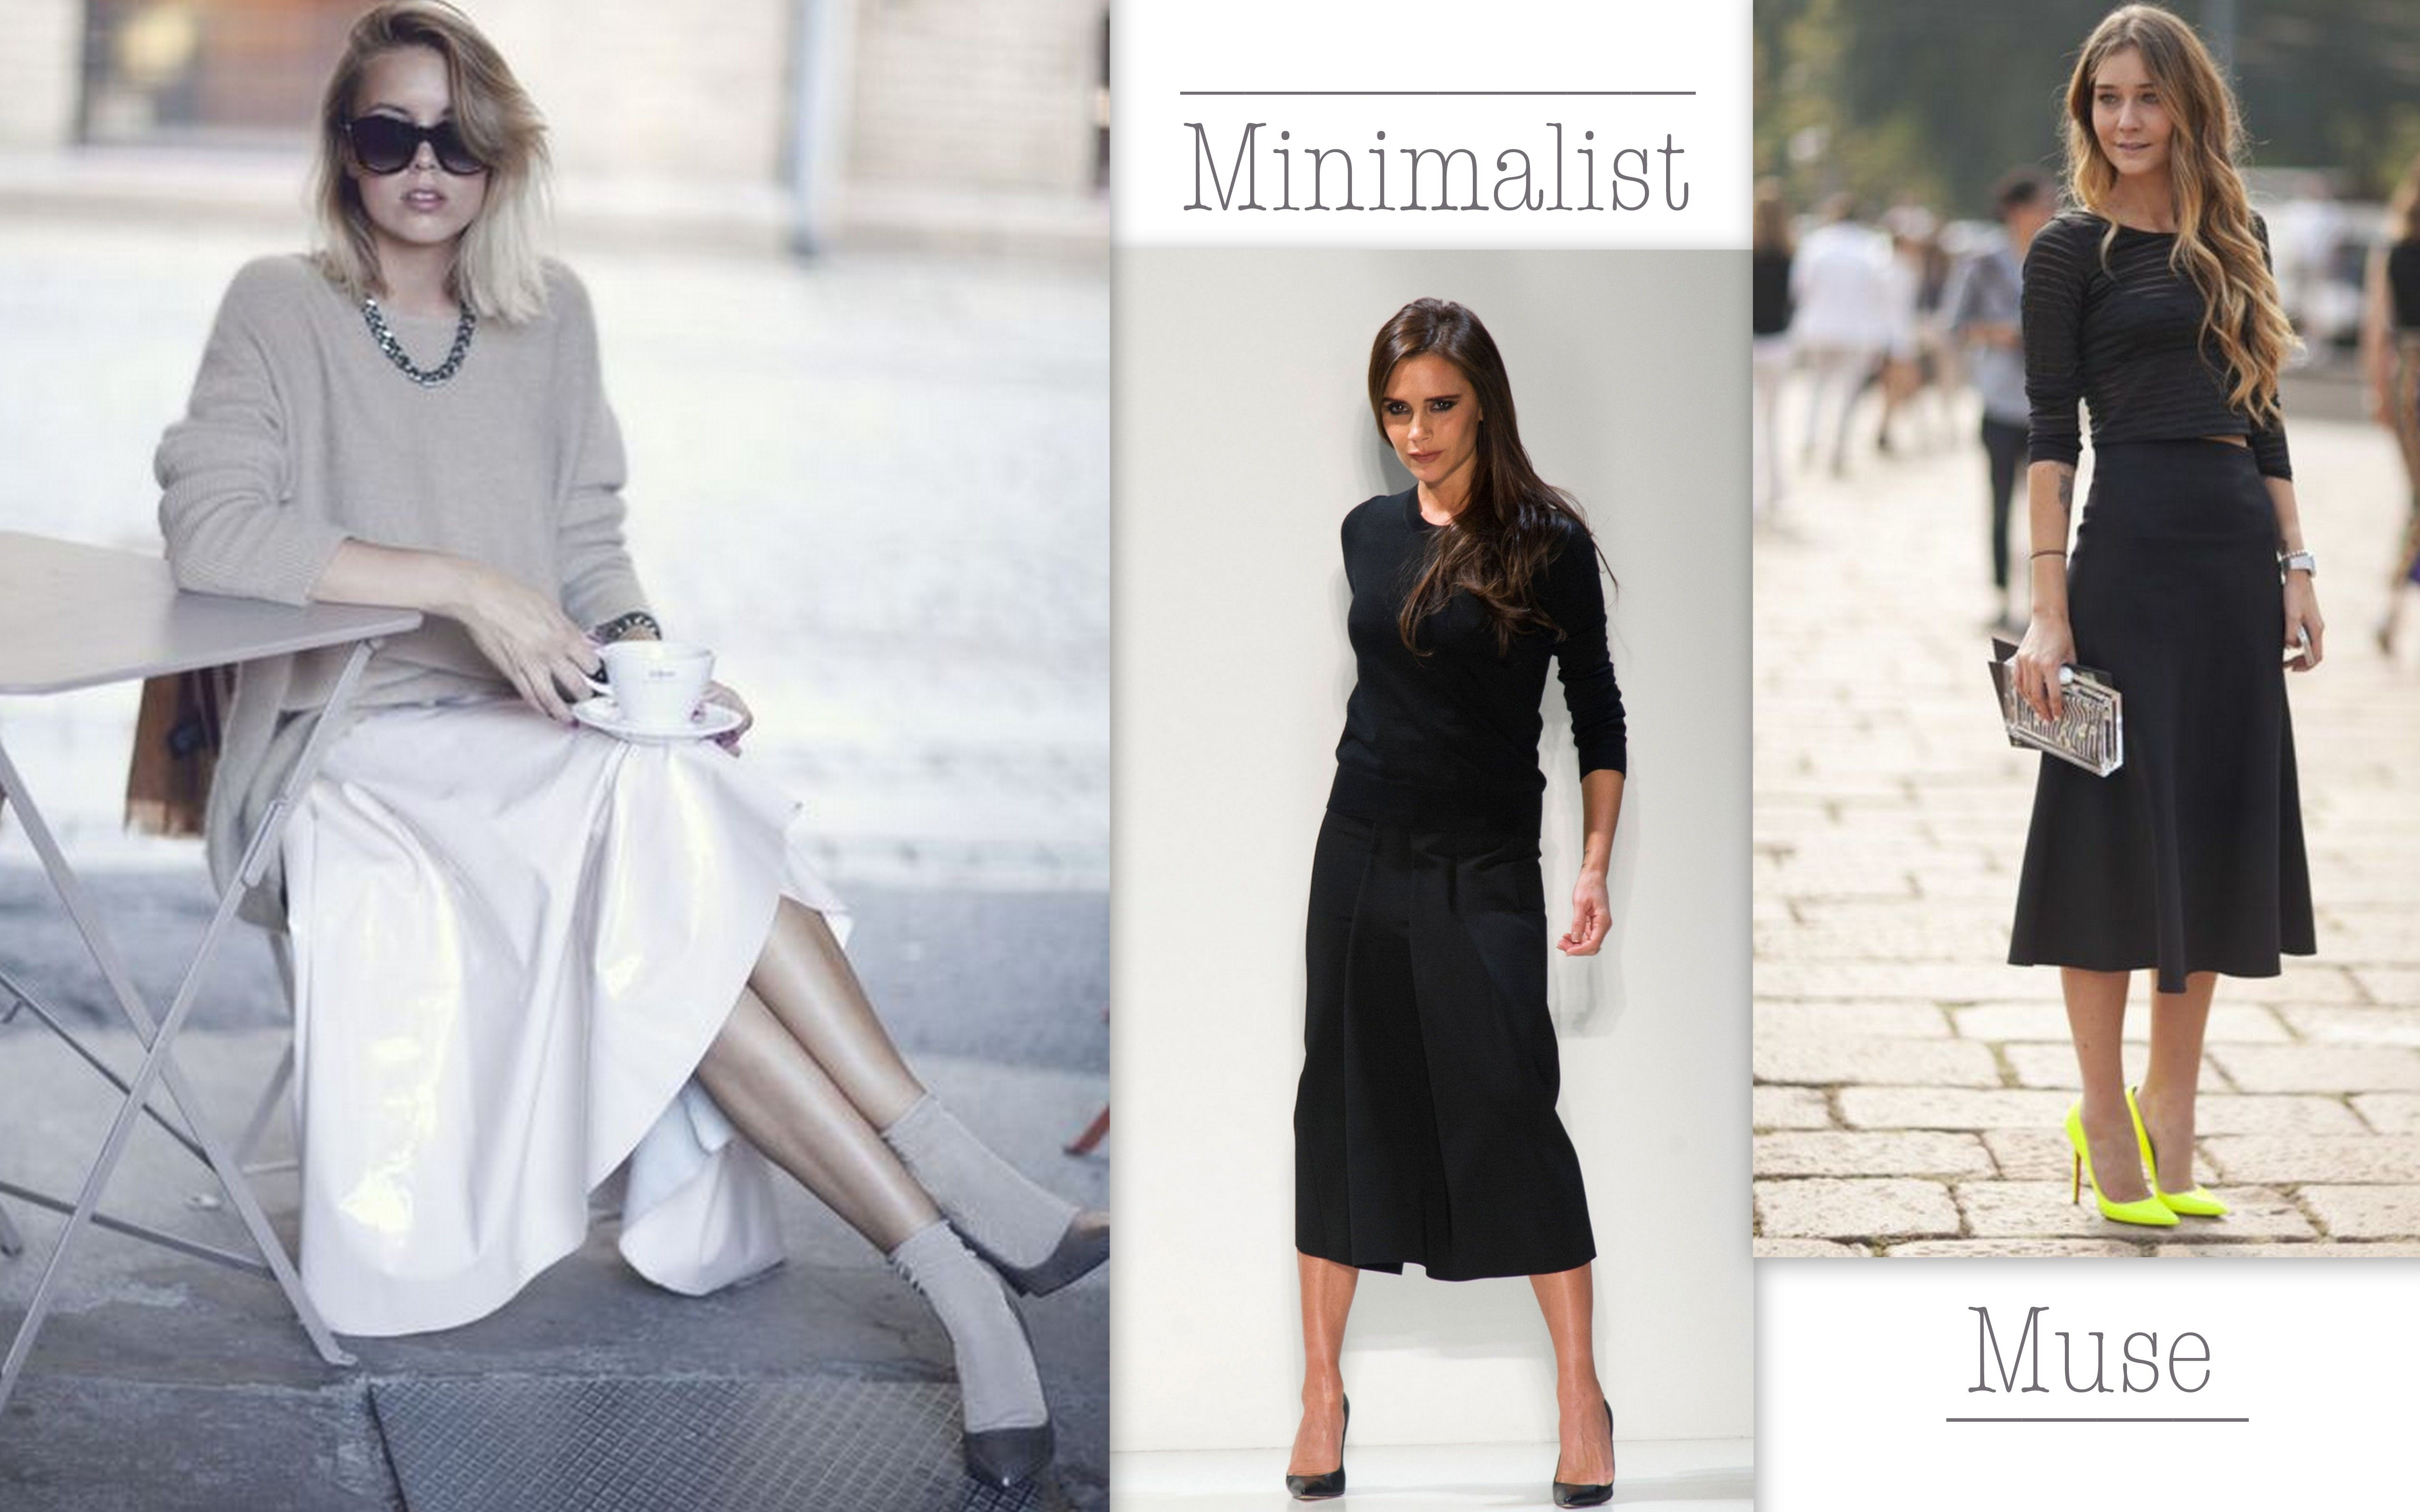 Styled to a Tea: FashioniSTA blog does Minimalist